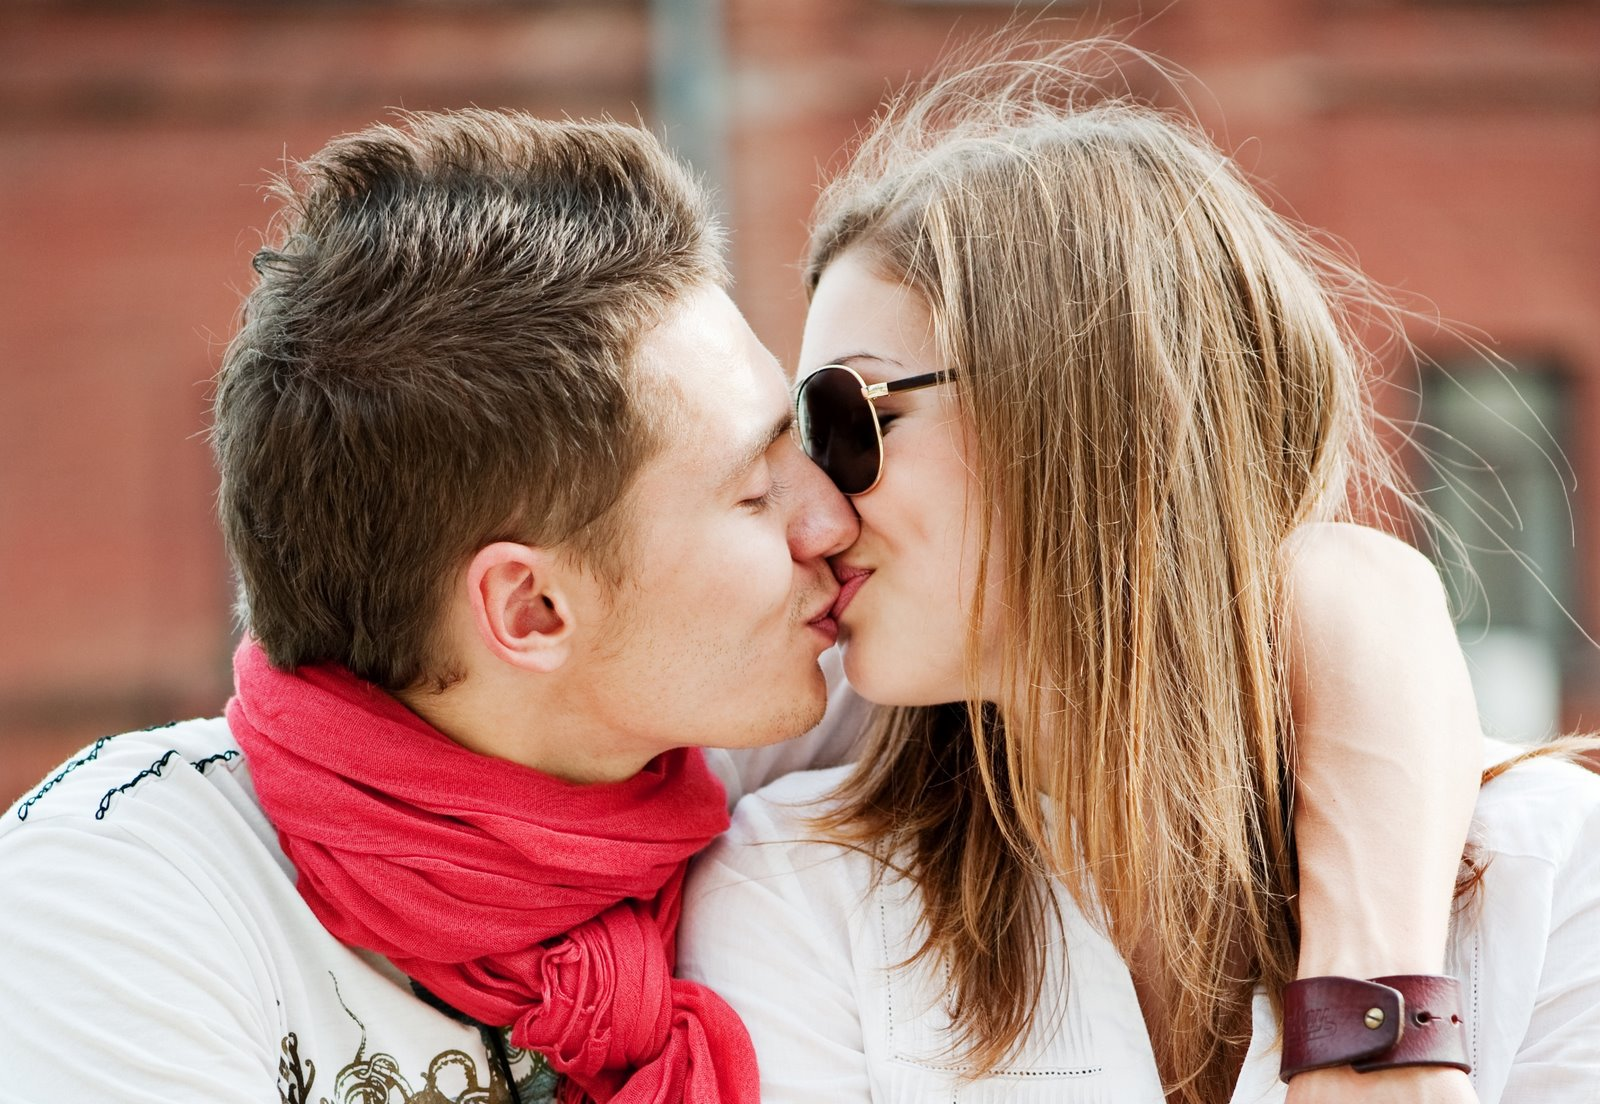 Download Romantic Love Quotes Wallpapers How To Kiss Wallpapers